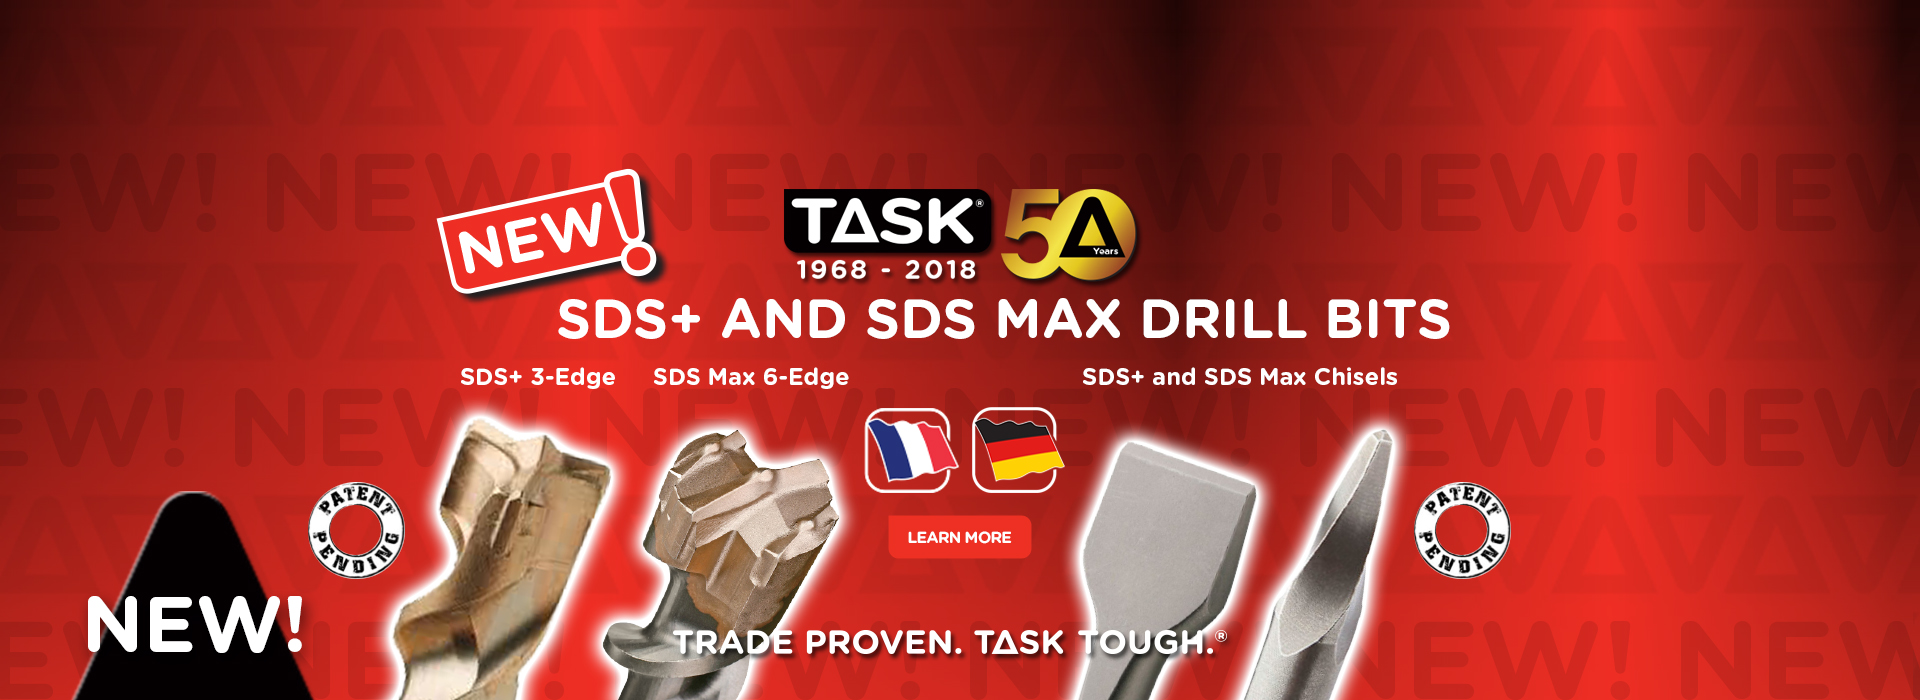 Task SDS+ and SDS Max Drill Bits